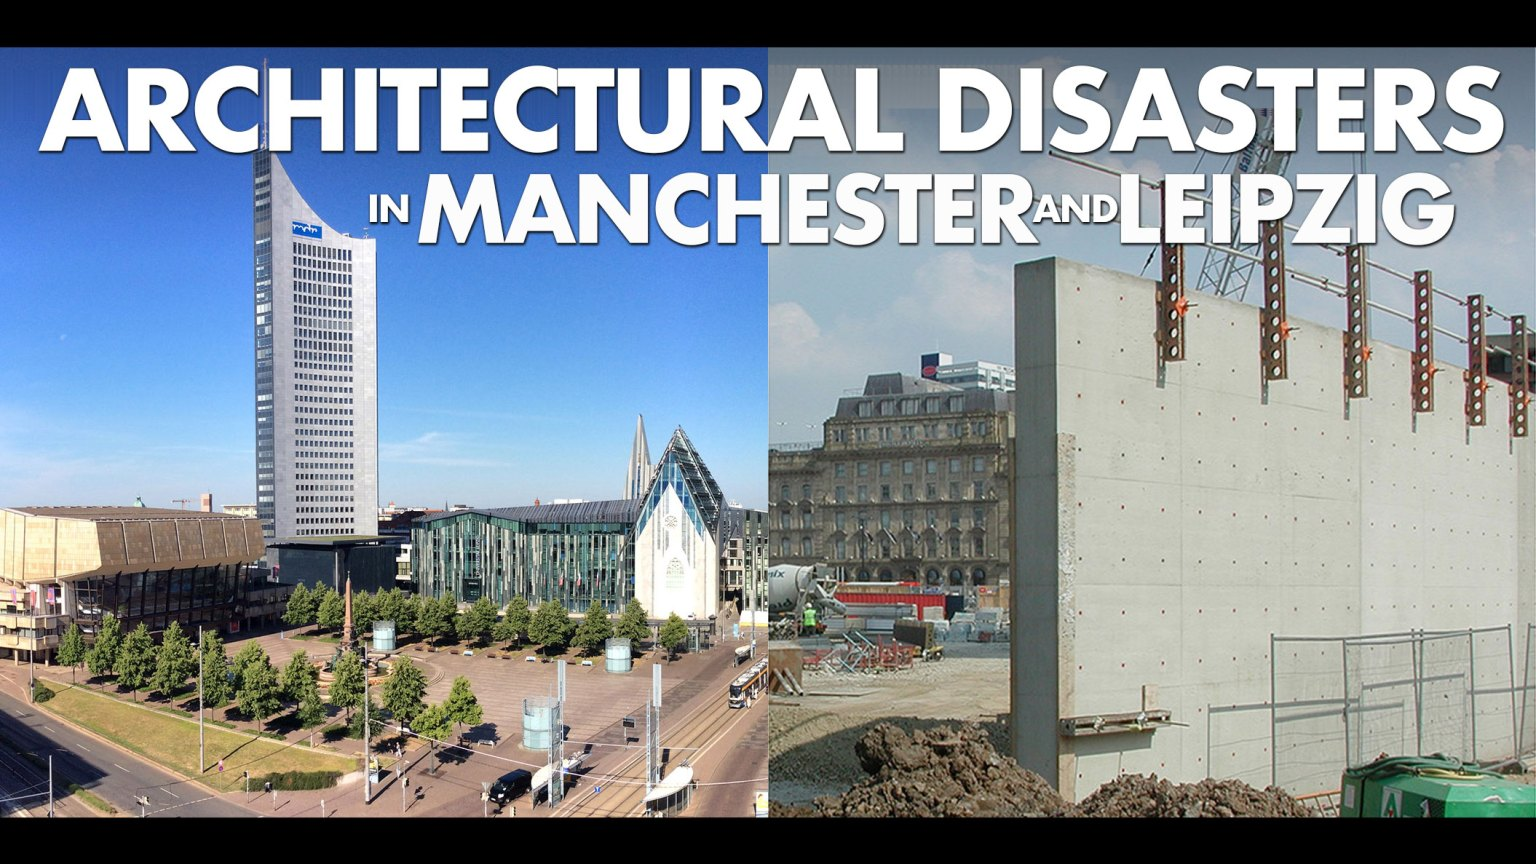 Architectural disasters in Manchester and Leipzig